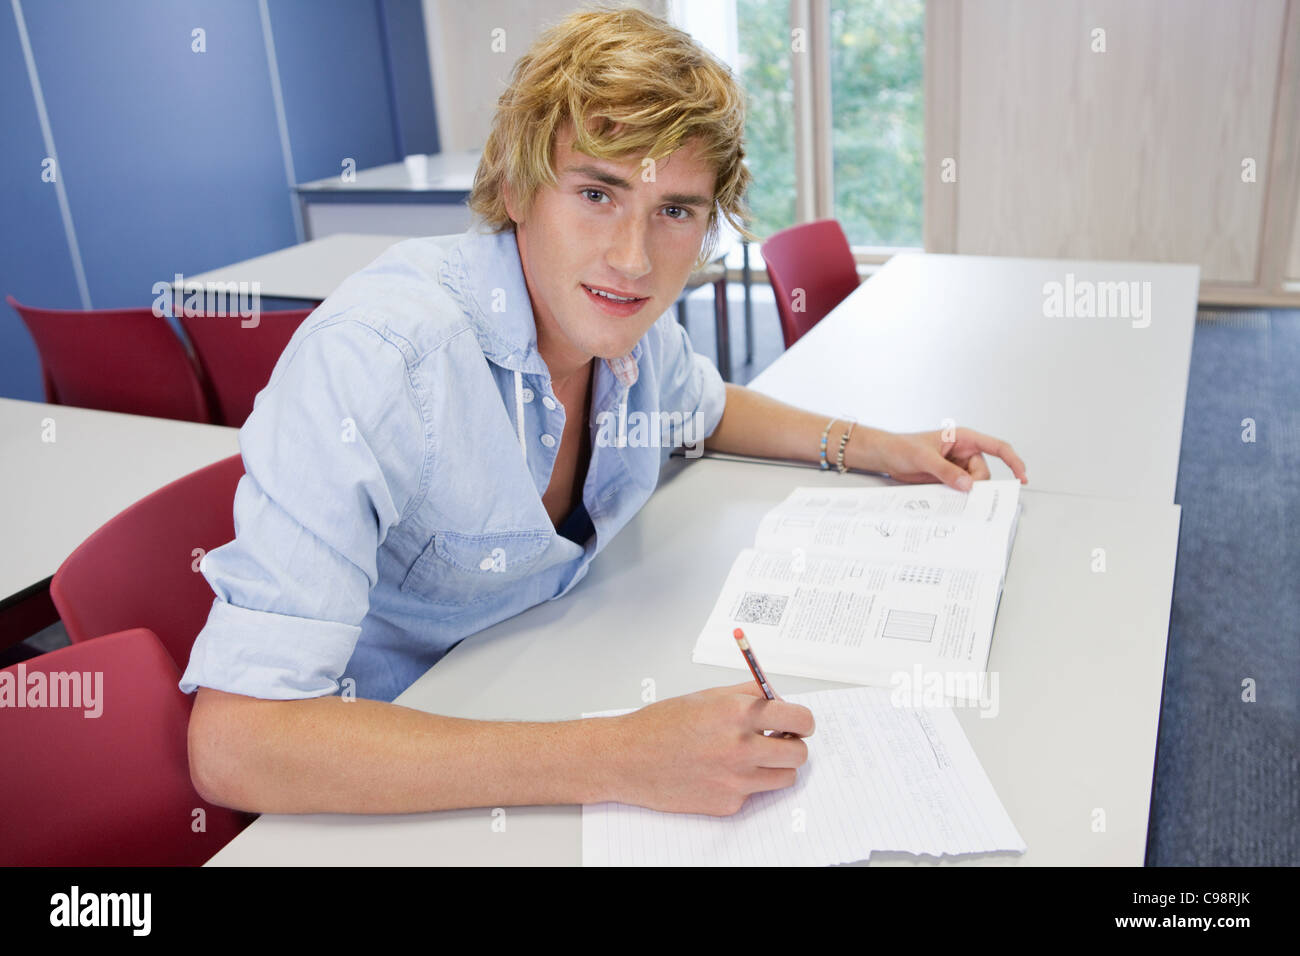 University student writing on exam paper class - Stock Image